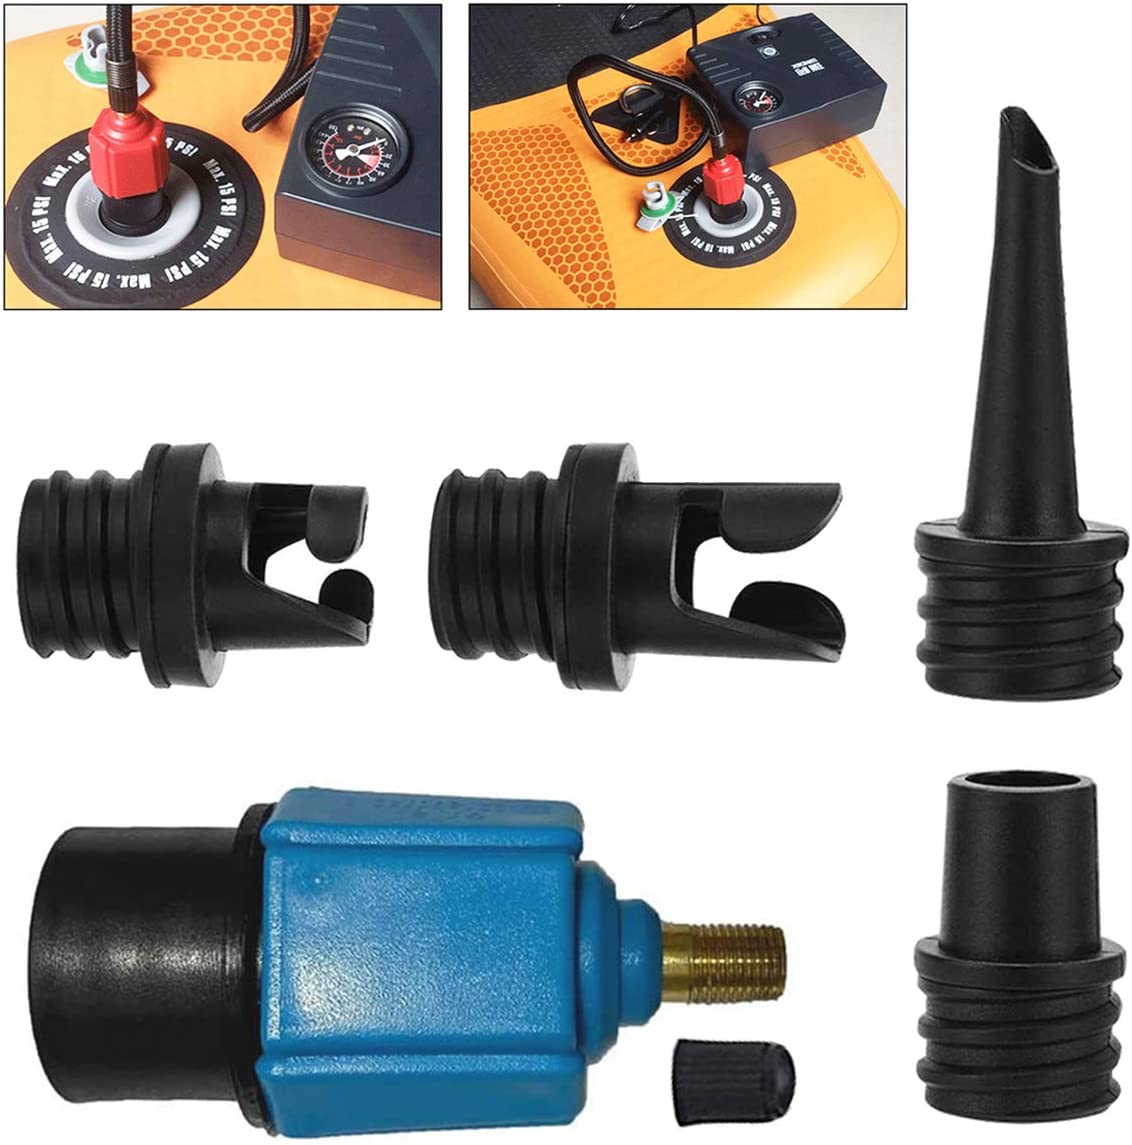 scarDS Inflatable SUP Pump Adaptor, Air Pump Converter with 4 Types Air Valve Nozzles, Multifunction Conversion Head for Kayaking, Dinghy,Inflatable Boat,Inflatable Bed,Paddle Board,Swimming Ring